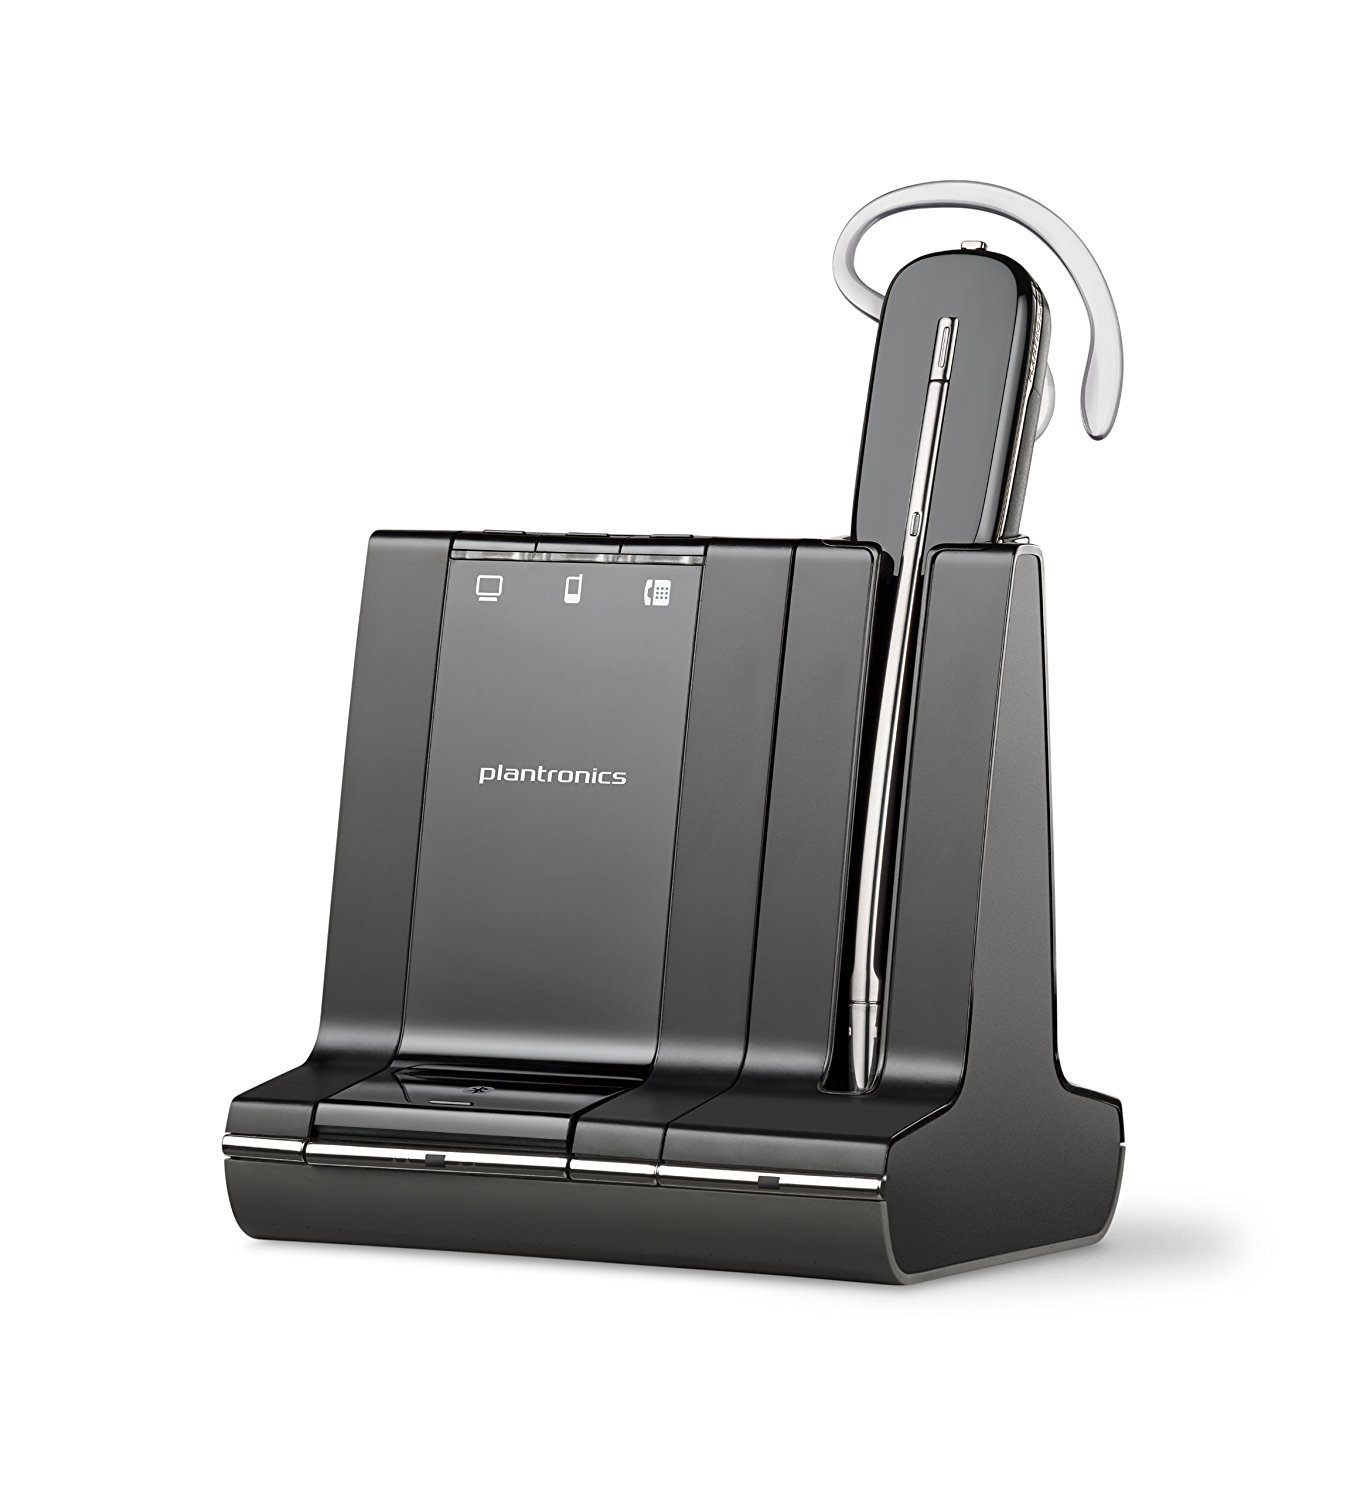 Plantronics Savi 740 Wireless Headset System for Unified Communication